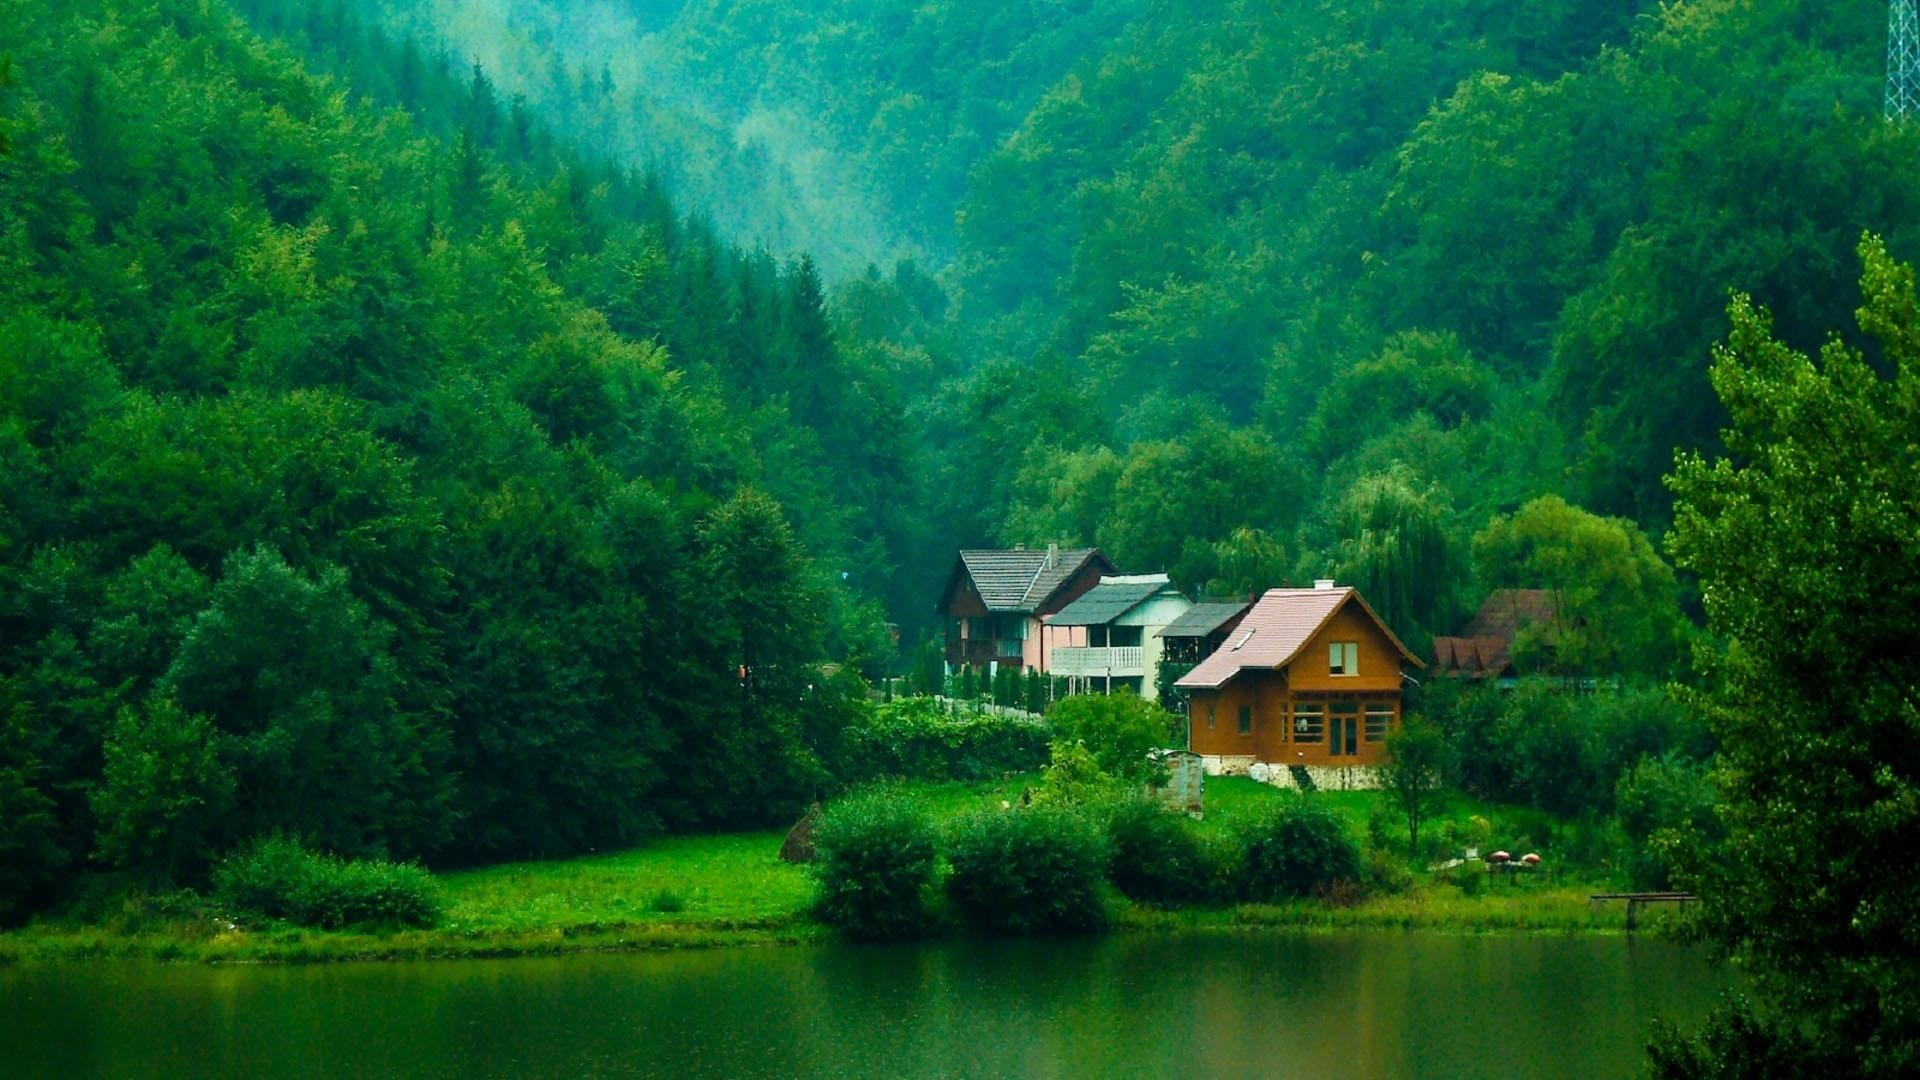 Lake houses in the forest wallpaper for Wallpaper with houses on it